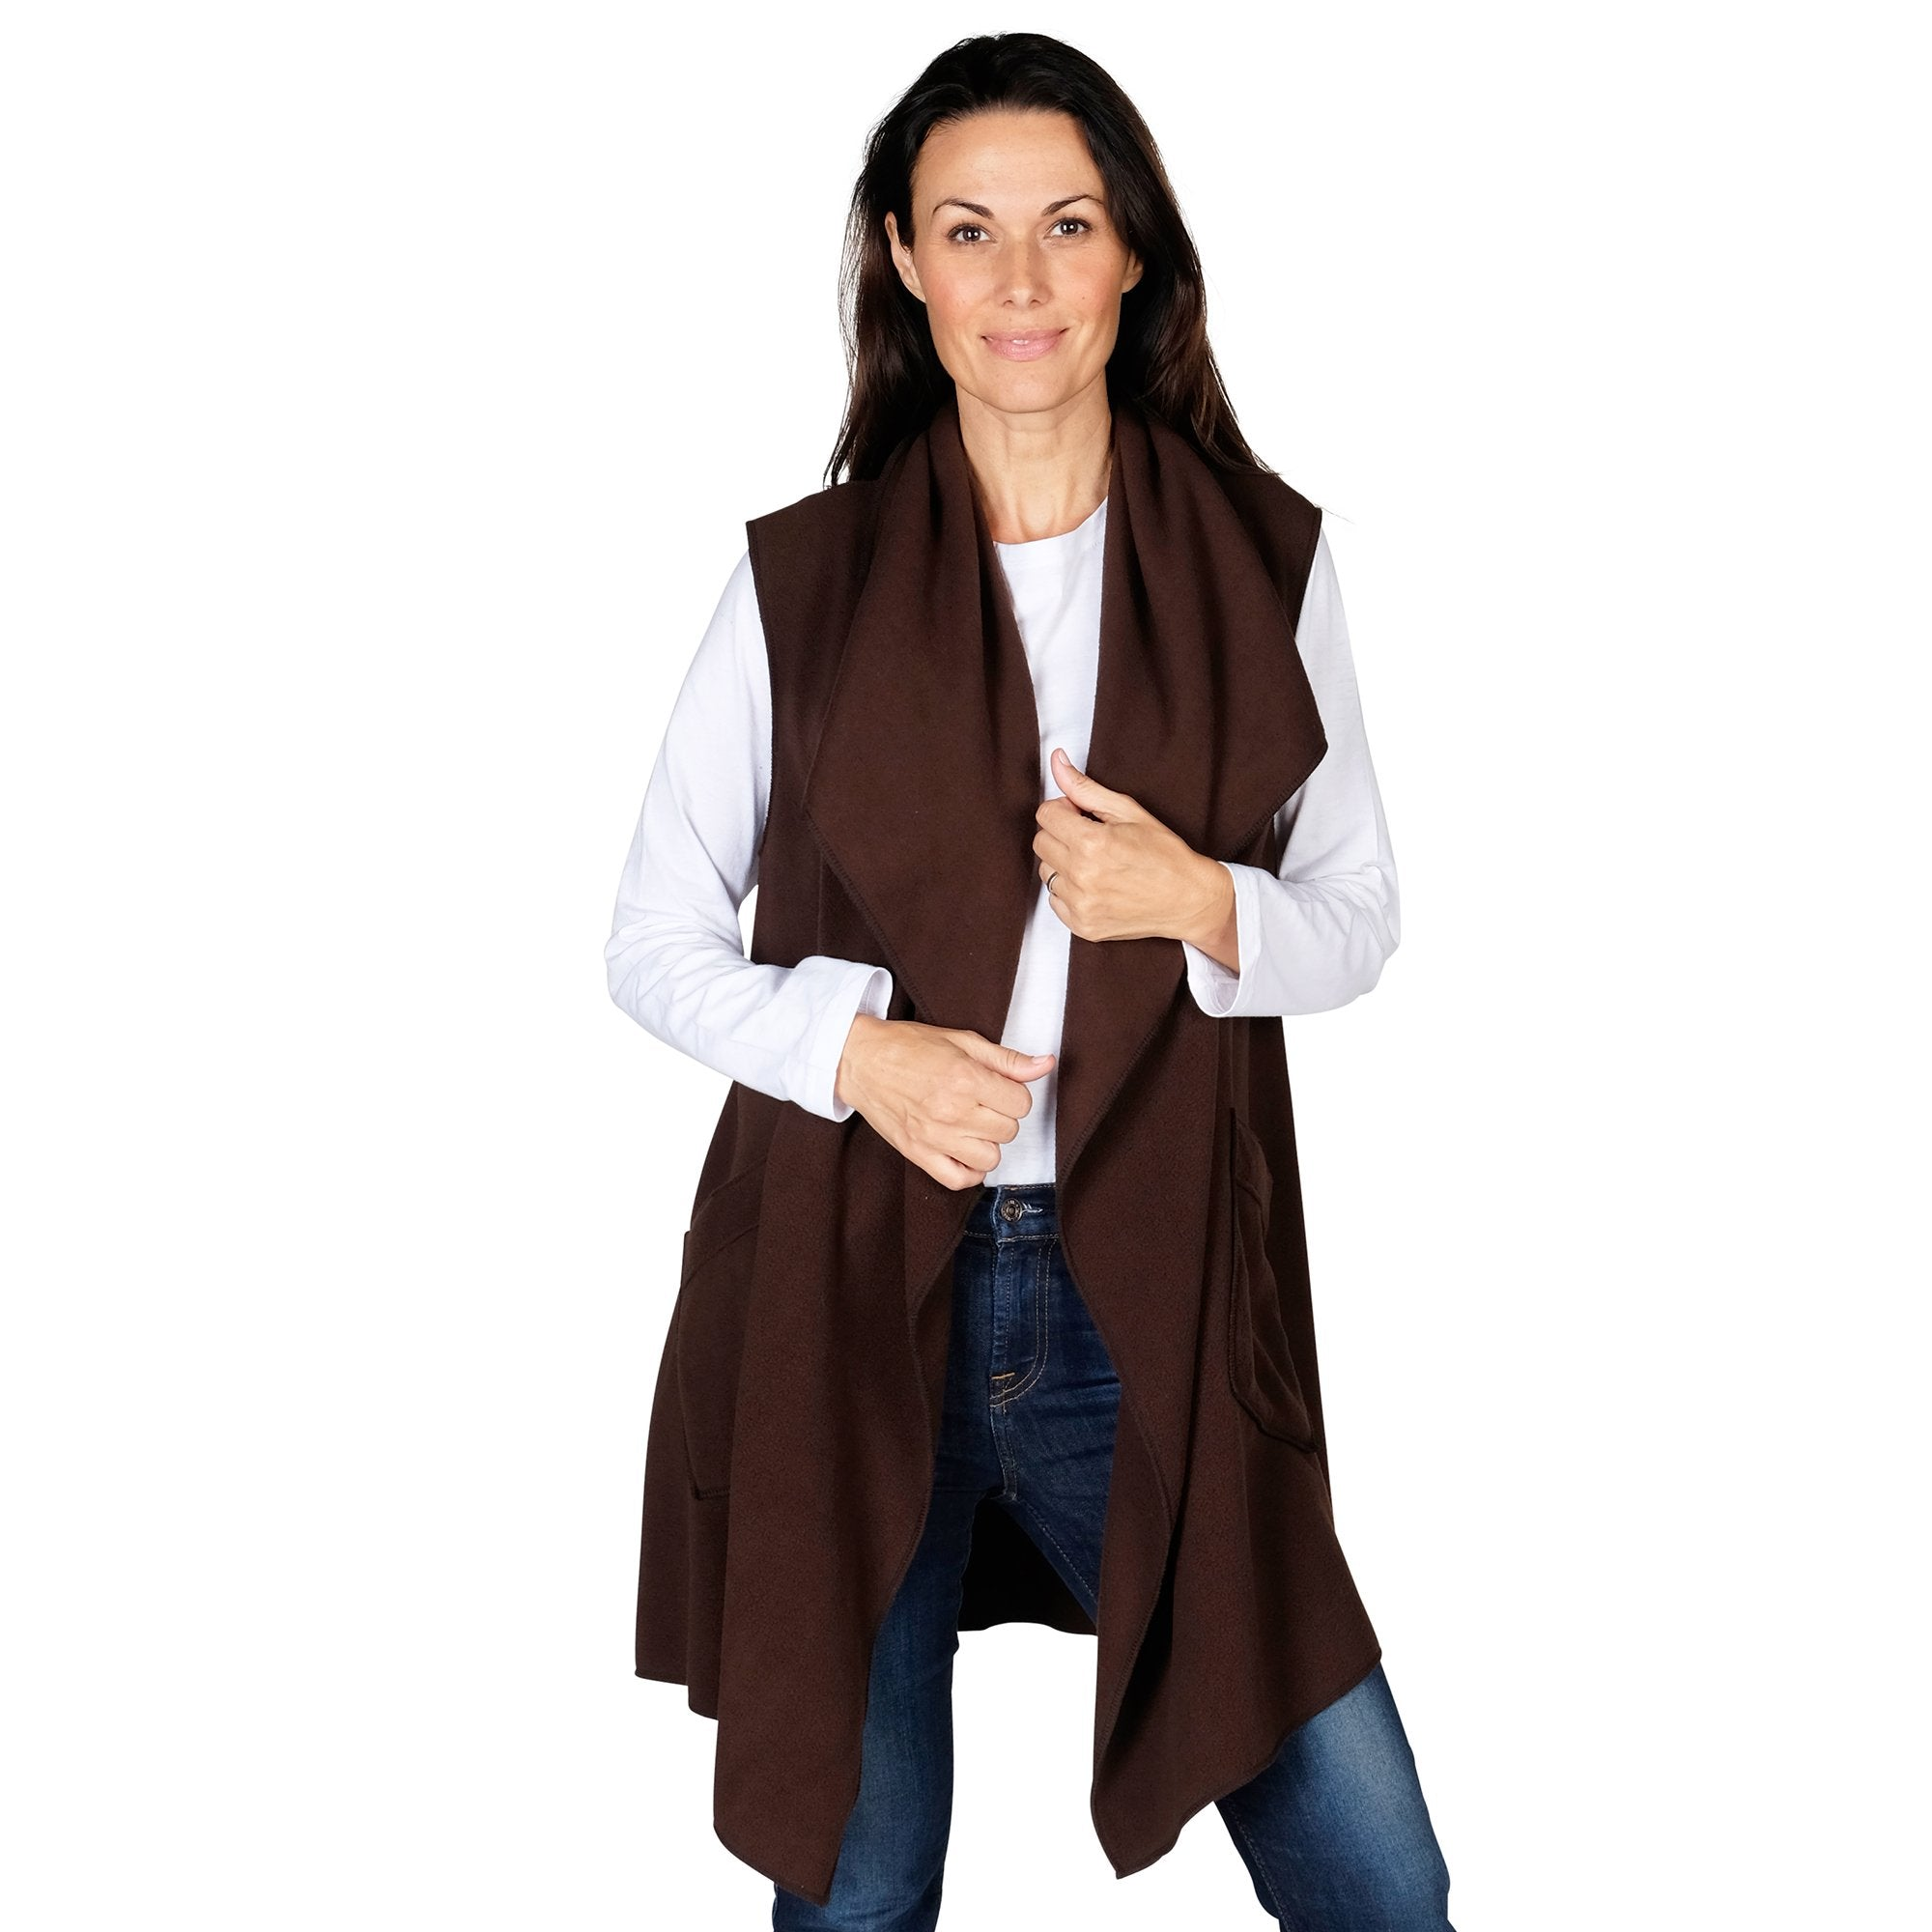 Le Moda Women's Pocketed Open Front Fleece Vest  Cardigan with Headband at Linda Anderson. color_chocolate